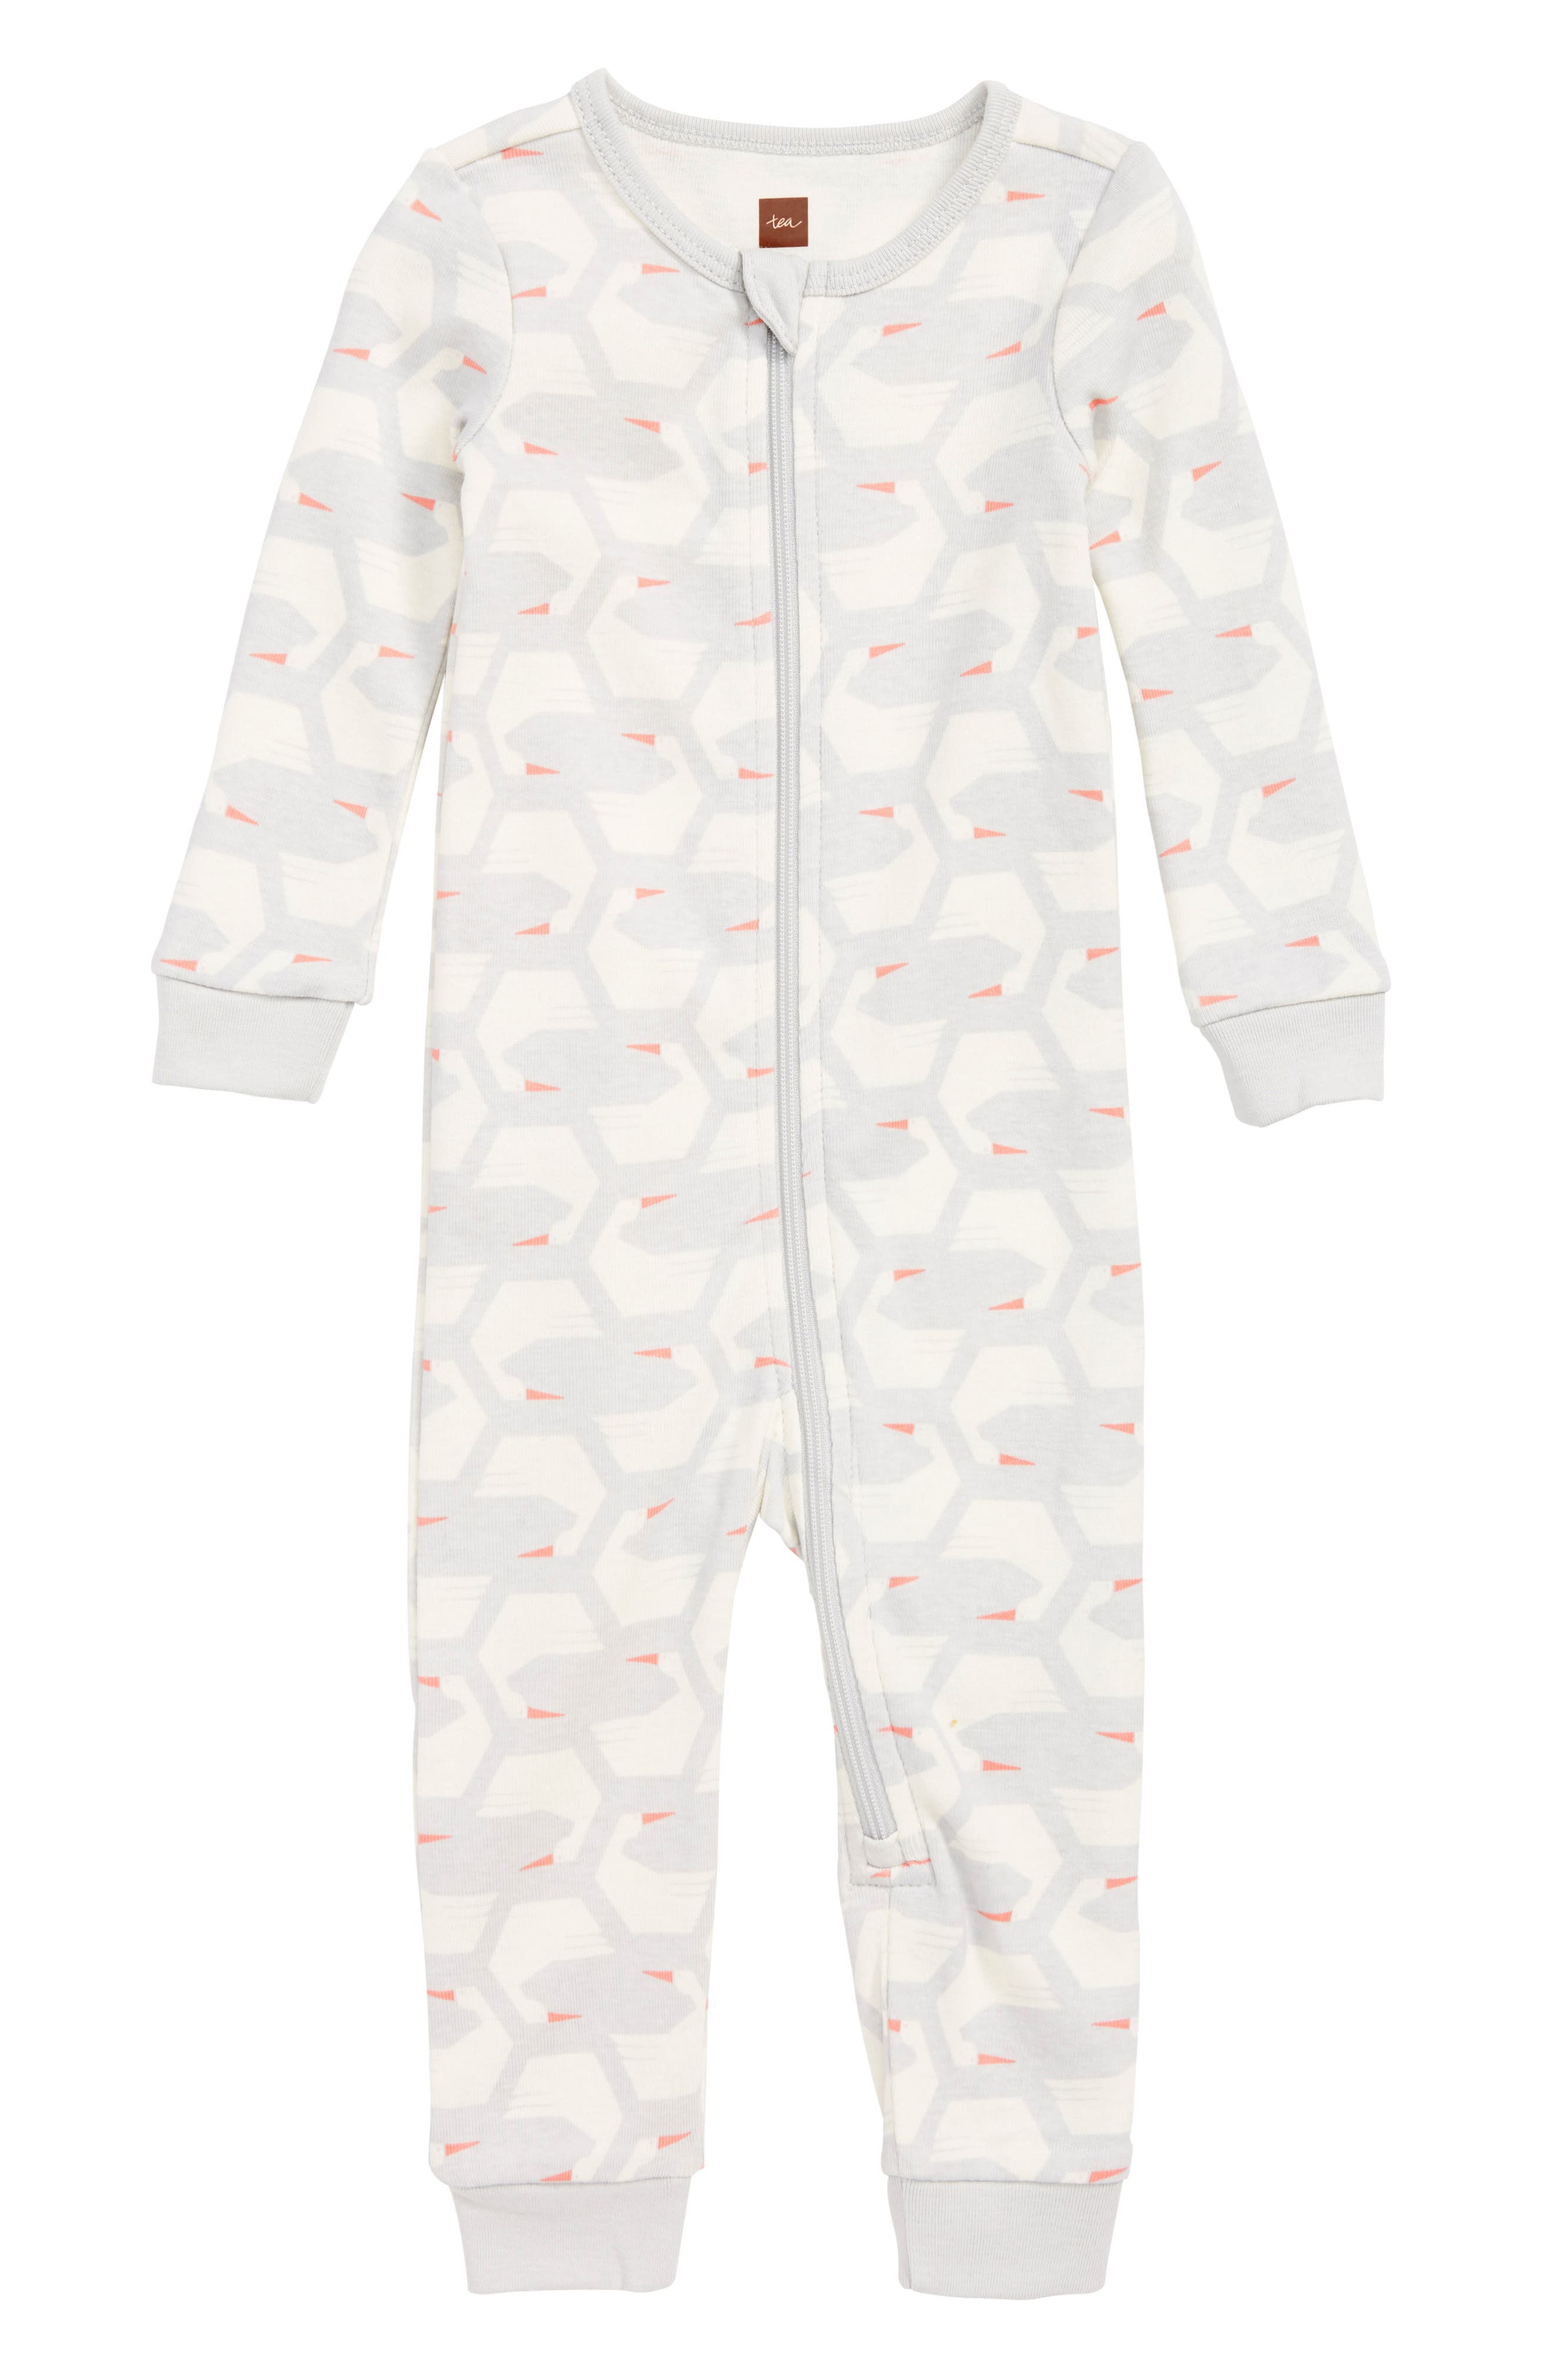 Fitted One-Piece Pajamas,                         Main,                         color, 023